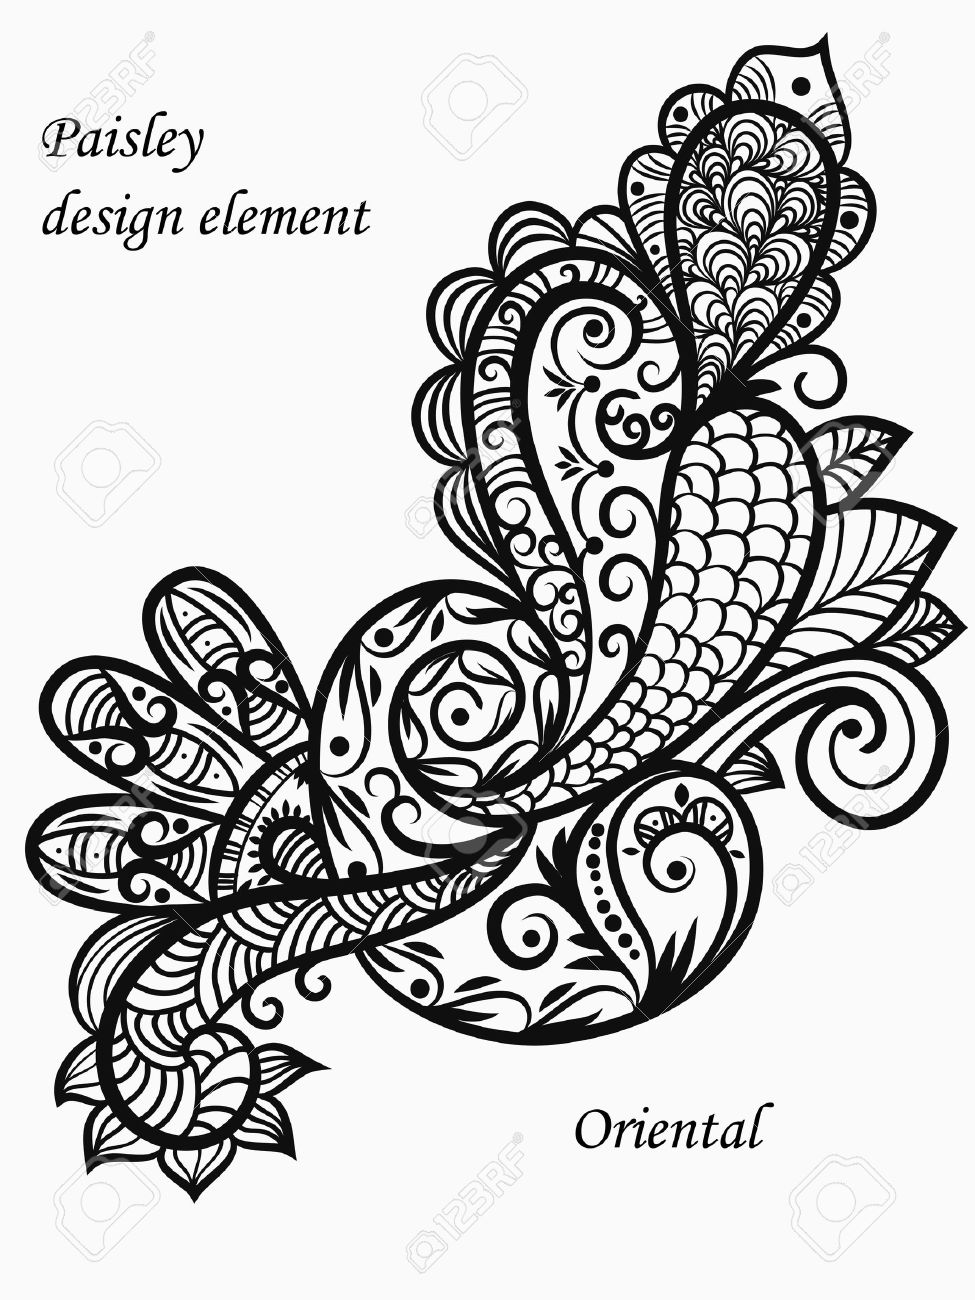 975x1300 Image Result For Paisley Design Paisley Pattern